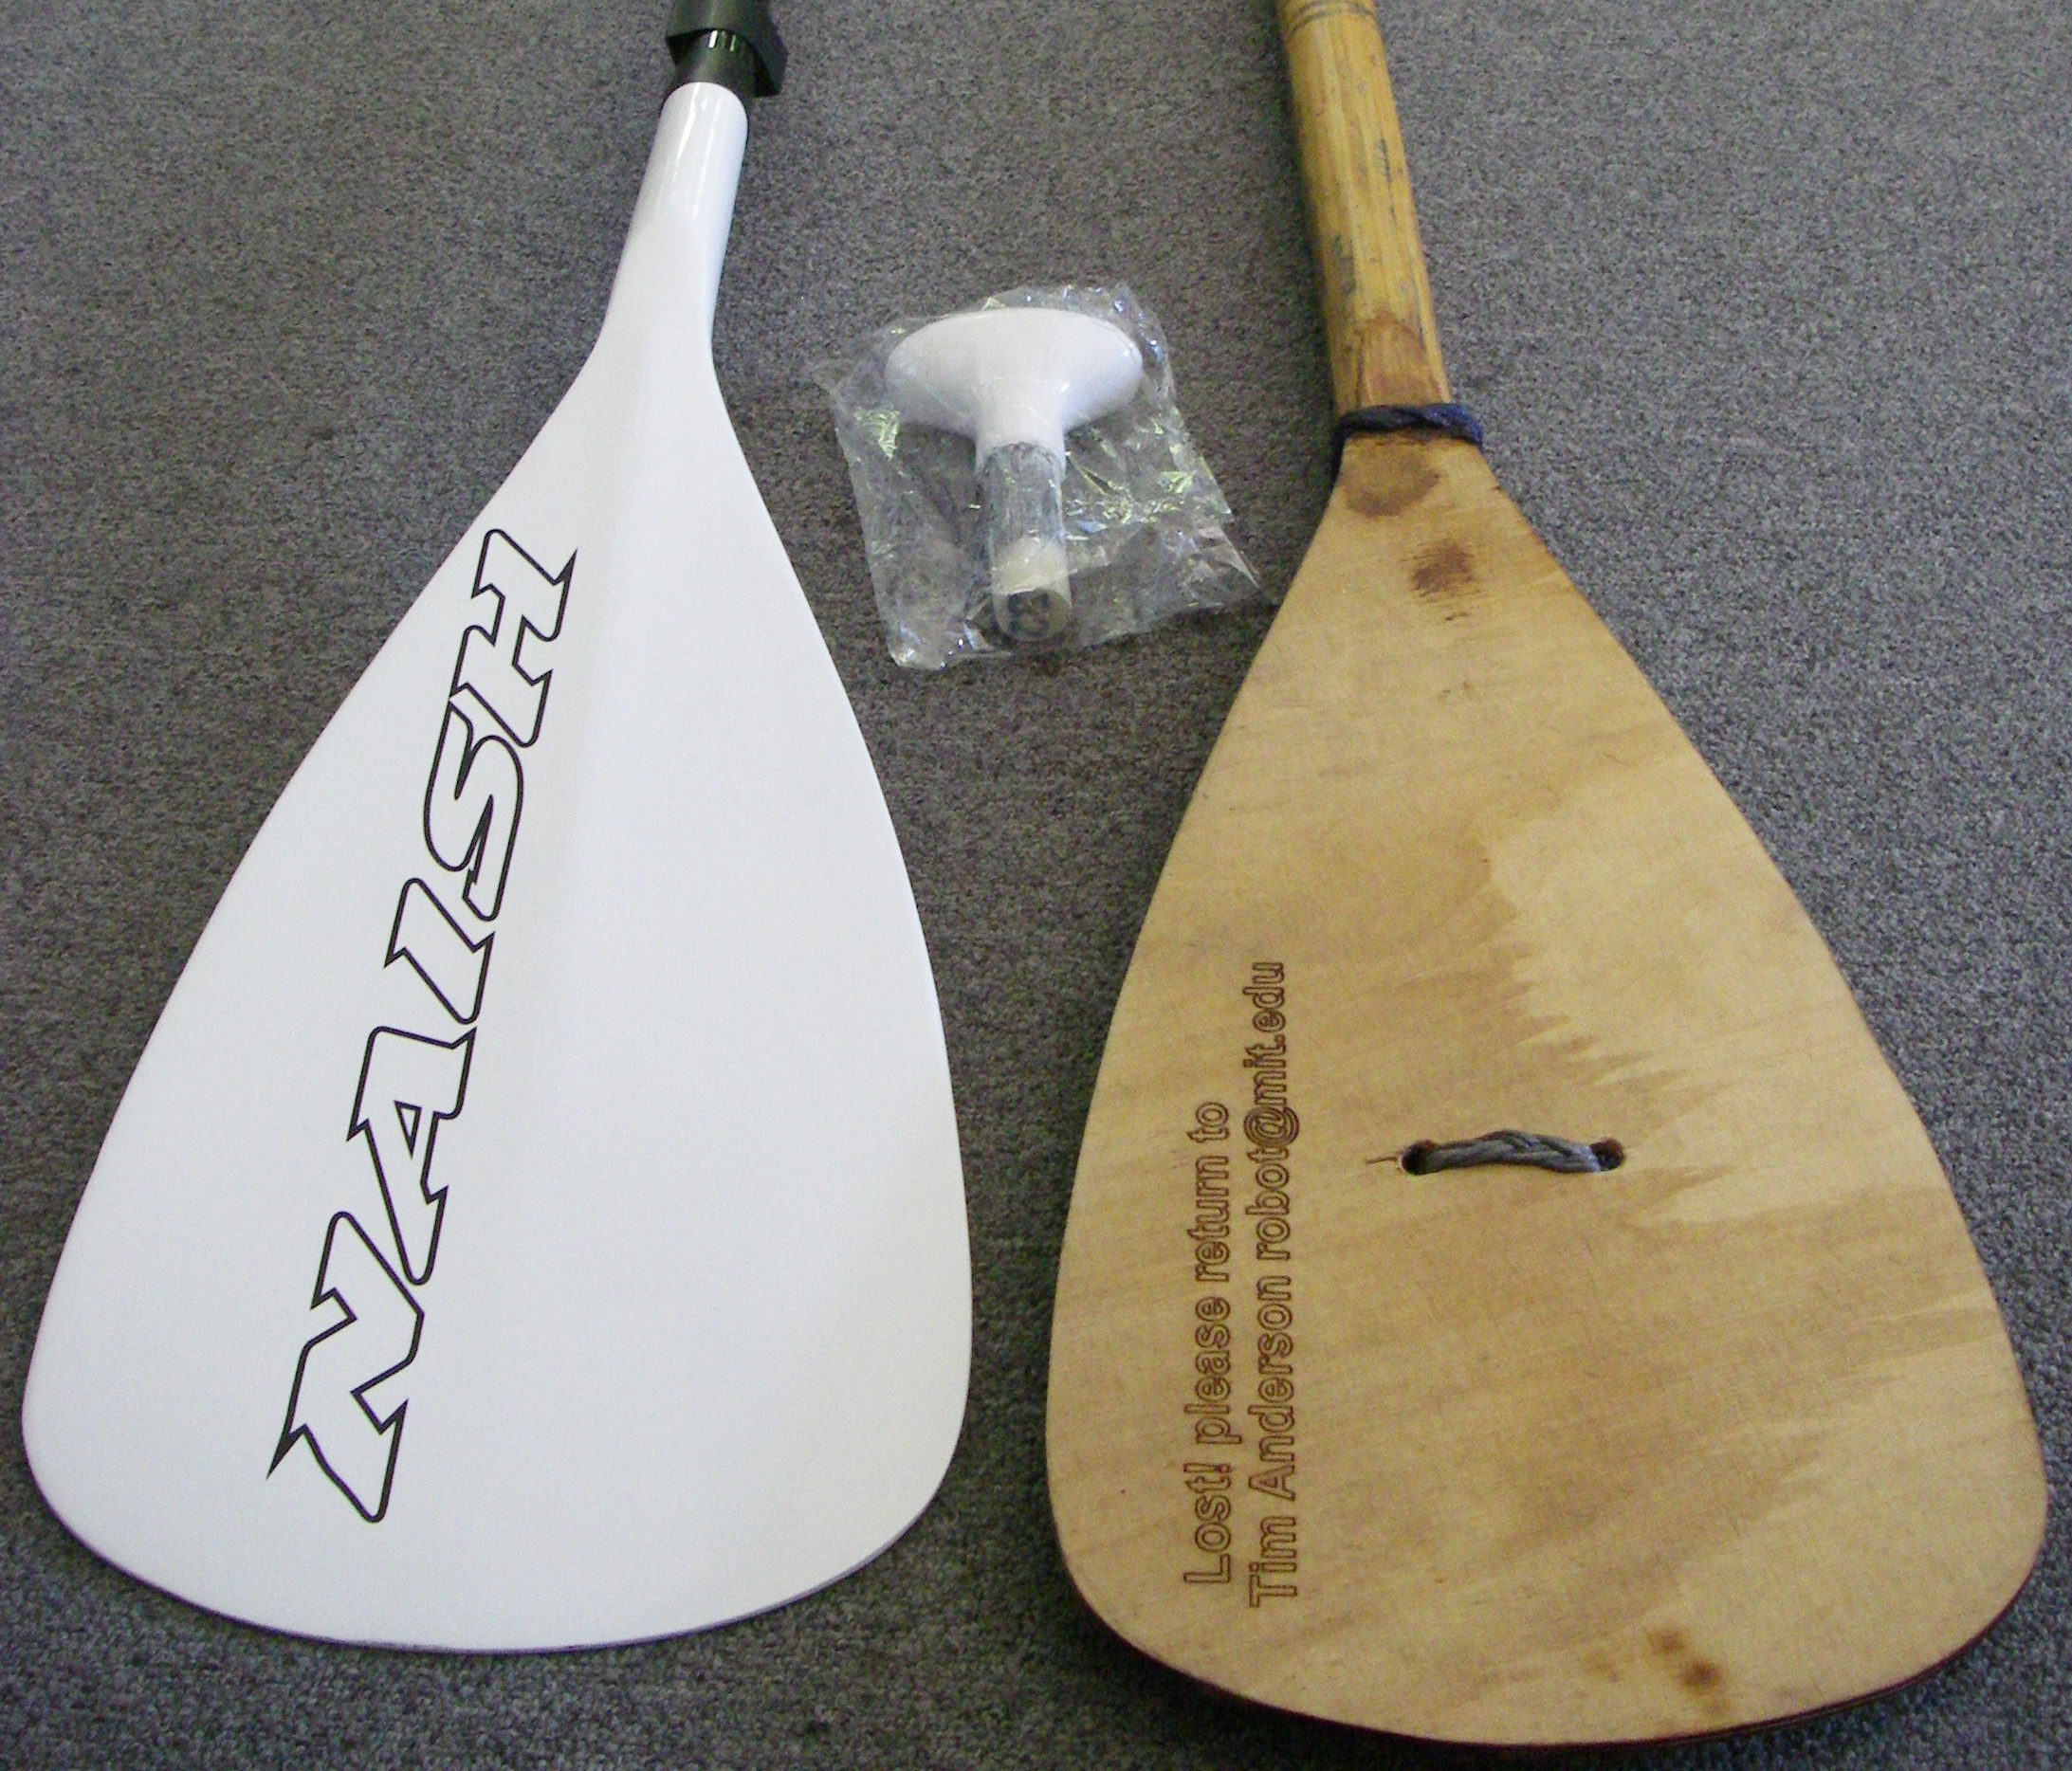 Heirloom Technology— Instant Paddle